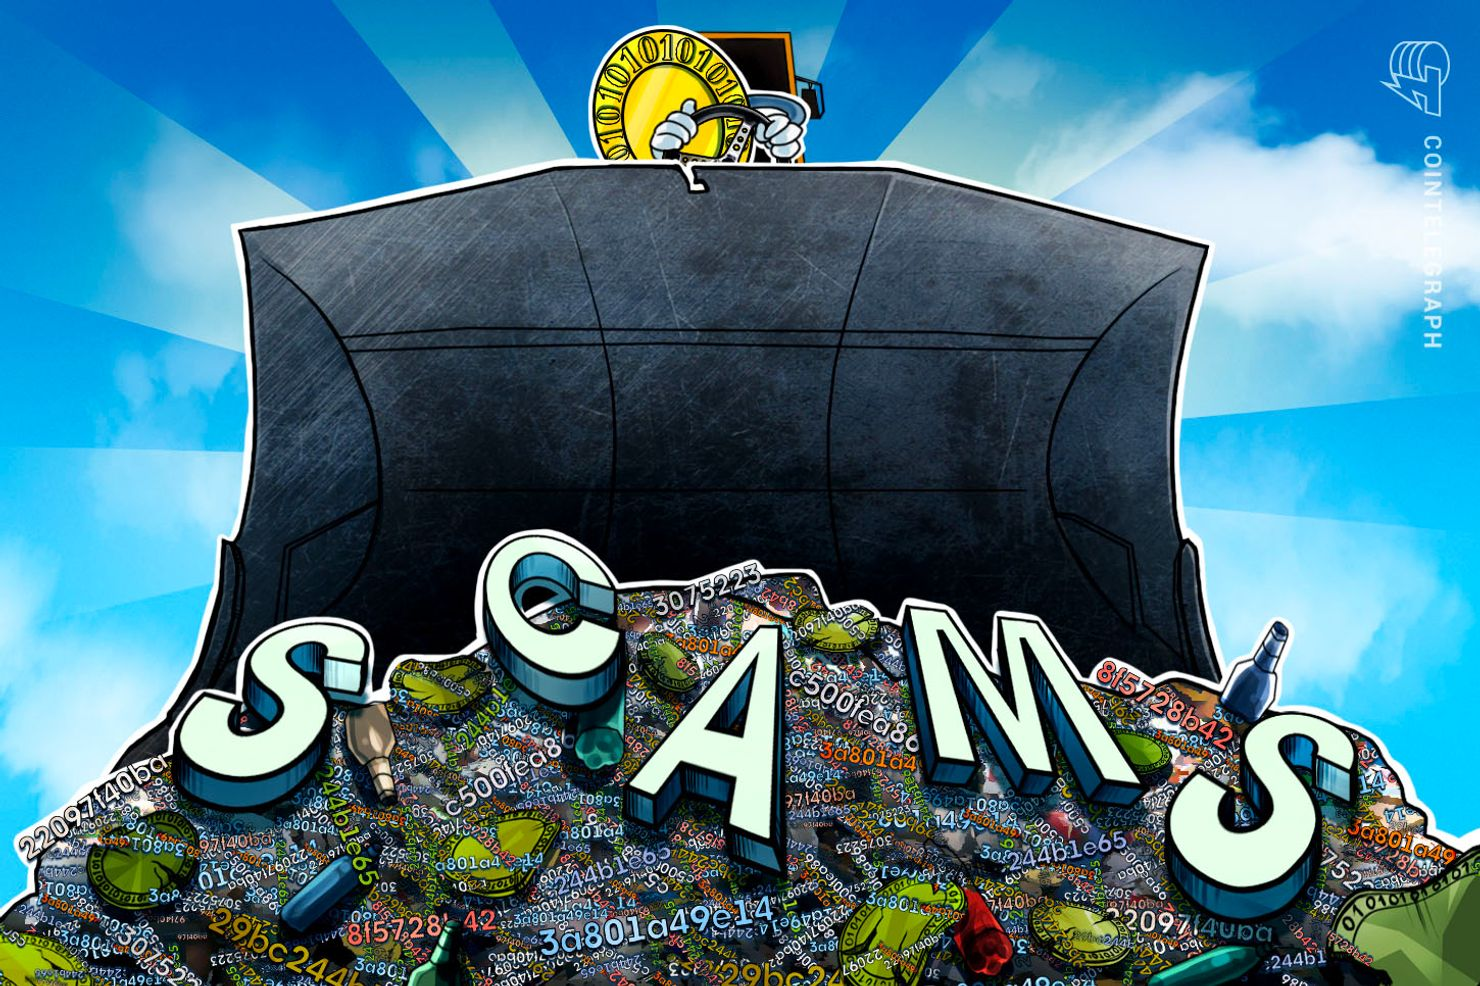 Report: Over $2 Million Lost to Crypto Scams in Second Quarter of 2018